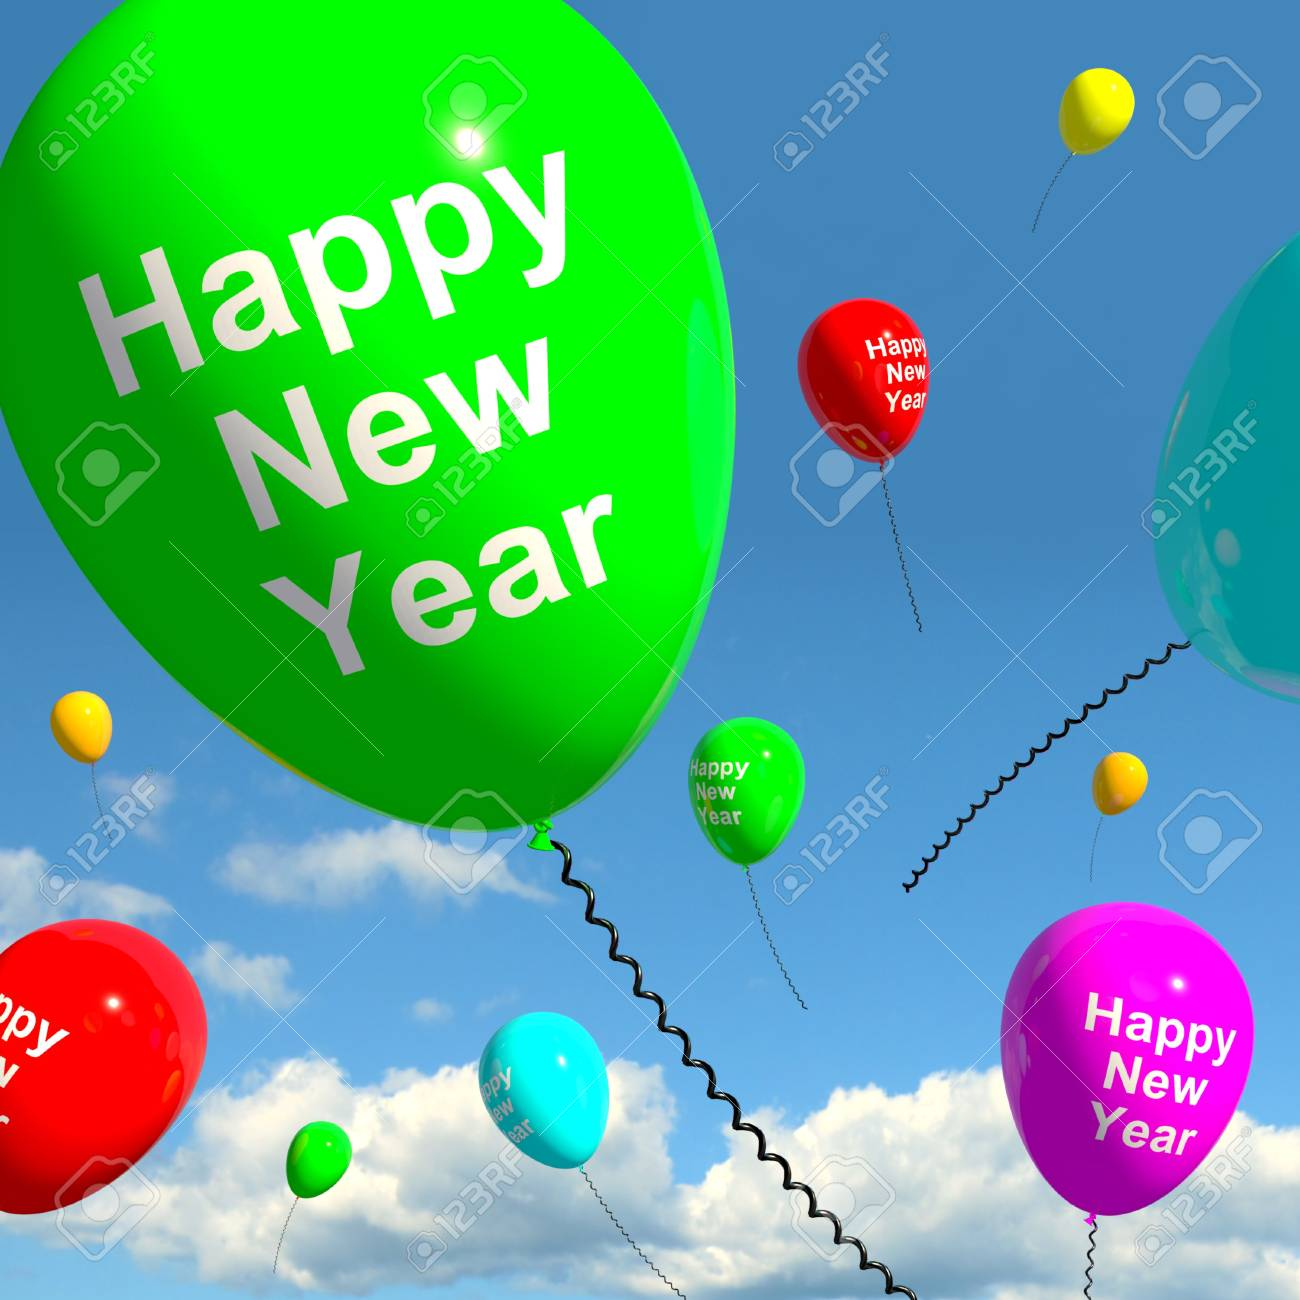 Balloons In The Sky Show Happy New Year Stock Photo - 13481310